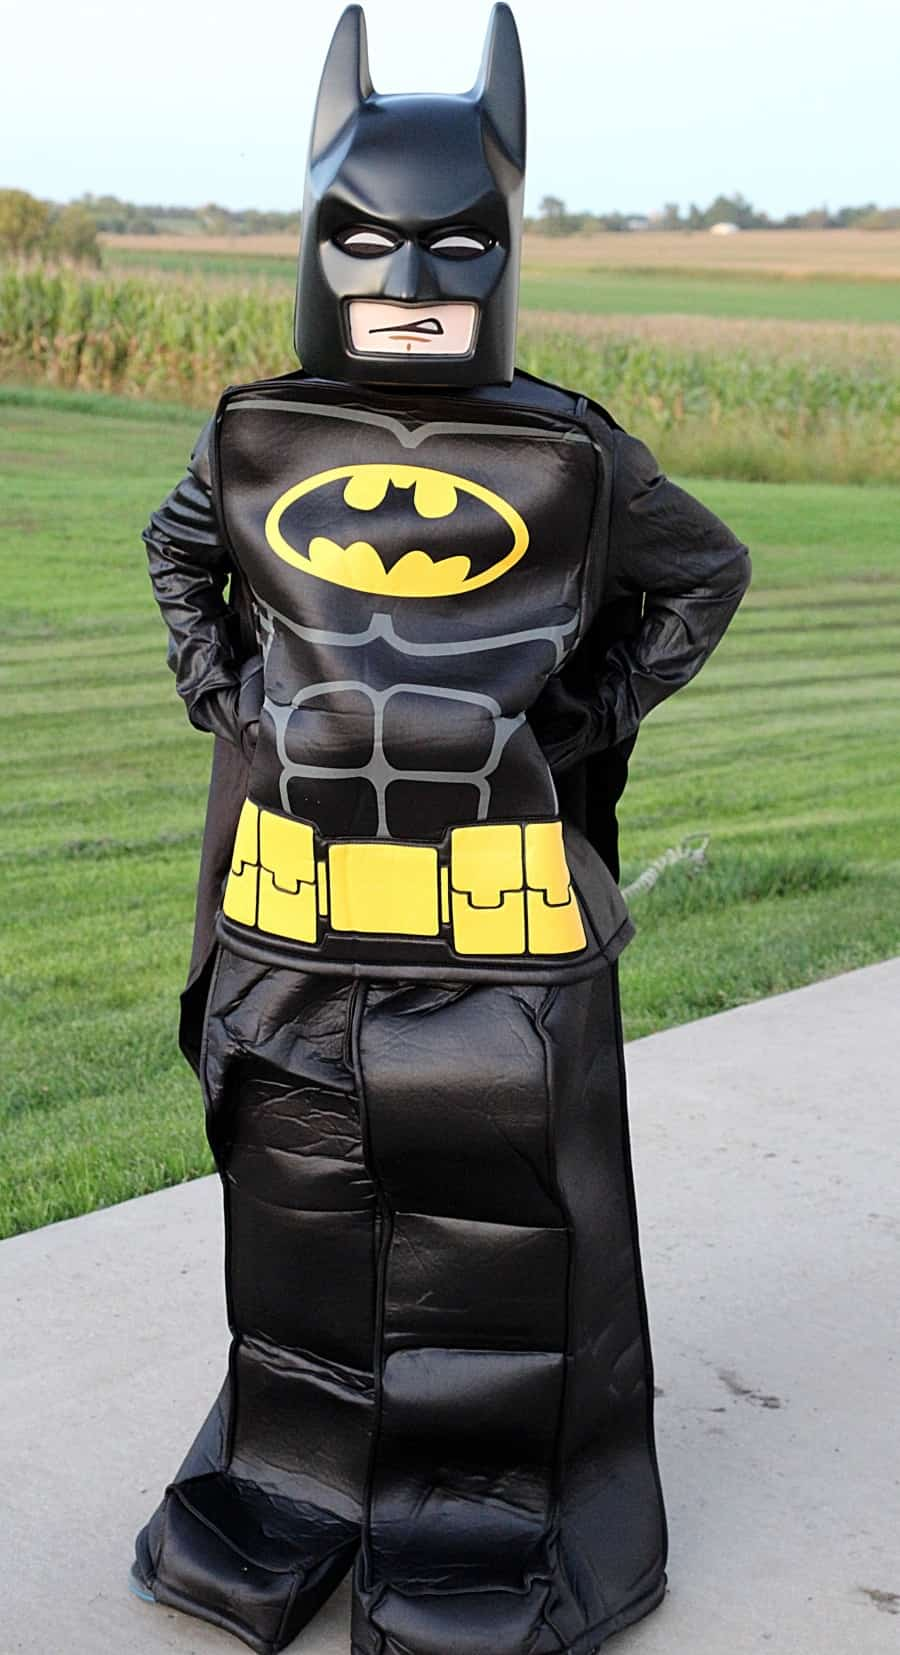 Chasing Fireflies Unique Halloween Costumes For Kids LEGO Batman